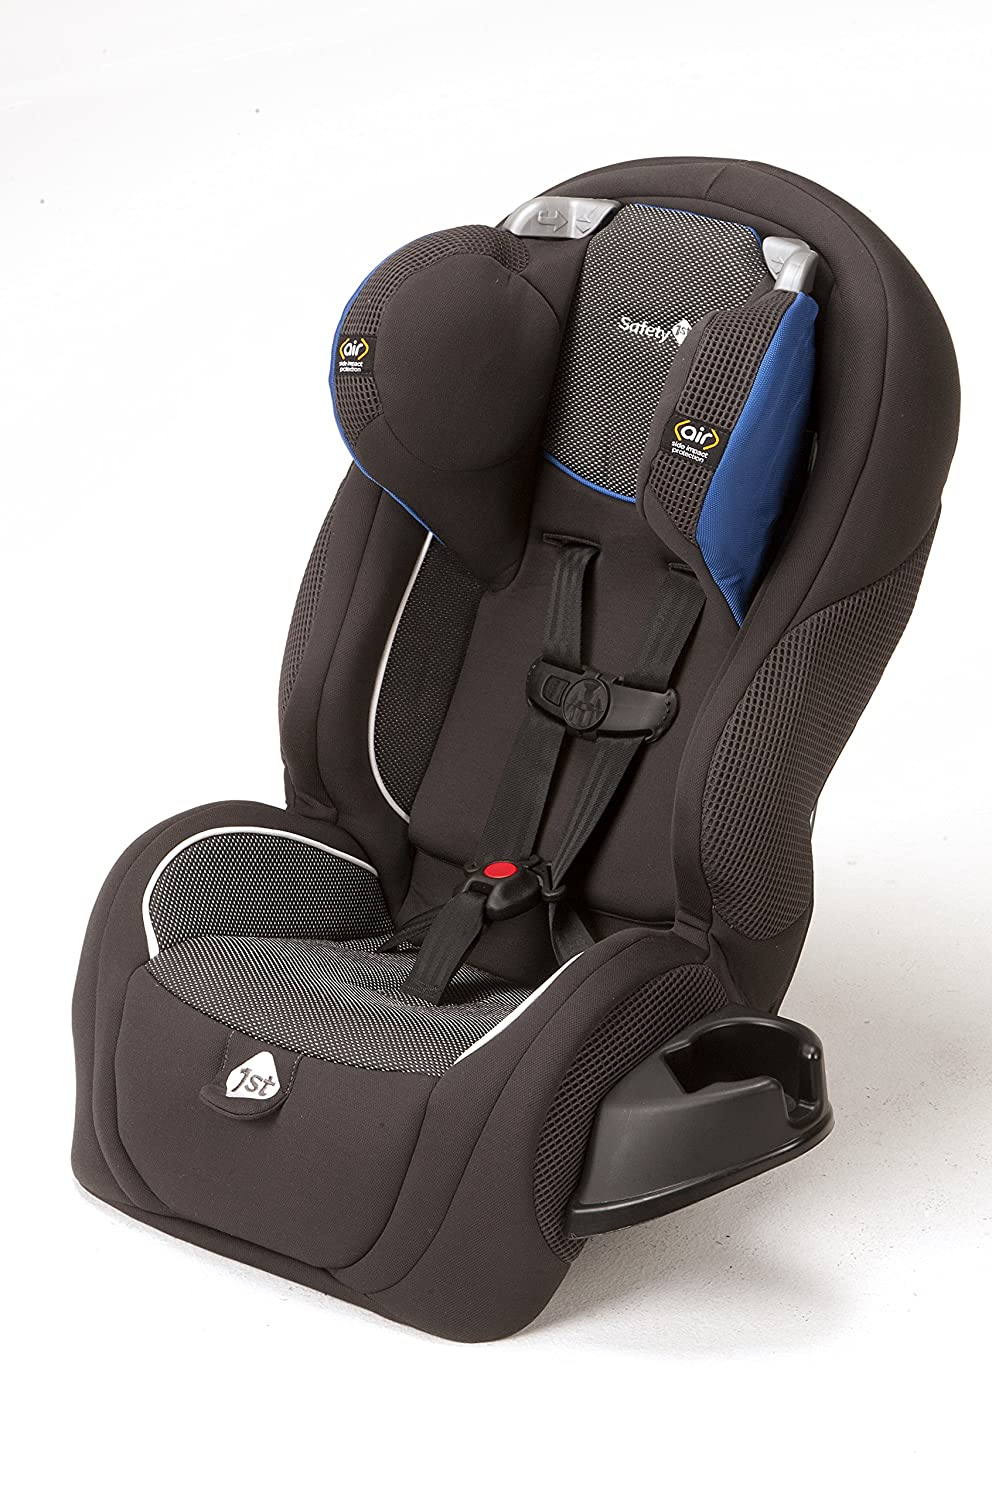 Amazon.com : Safety 1st Complete Air 65 Convertible Car Seat York :